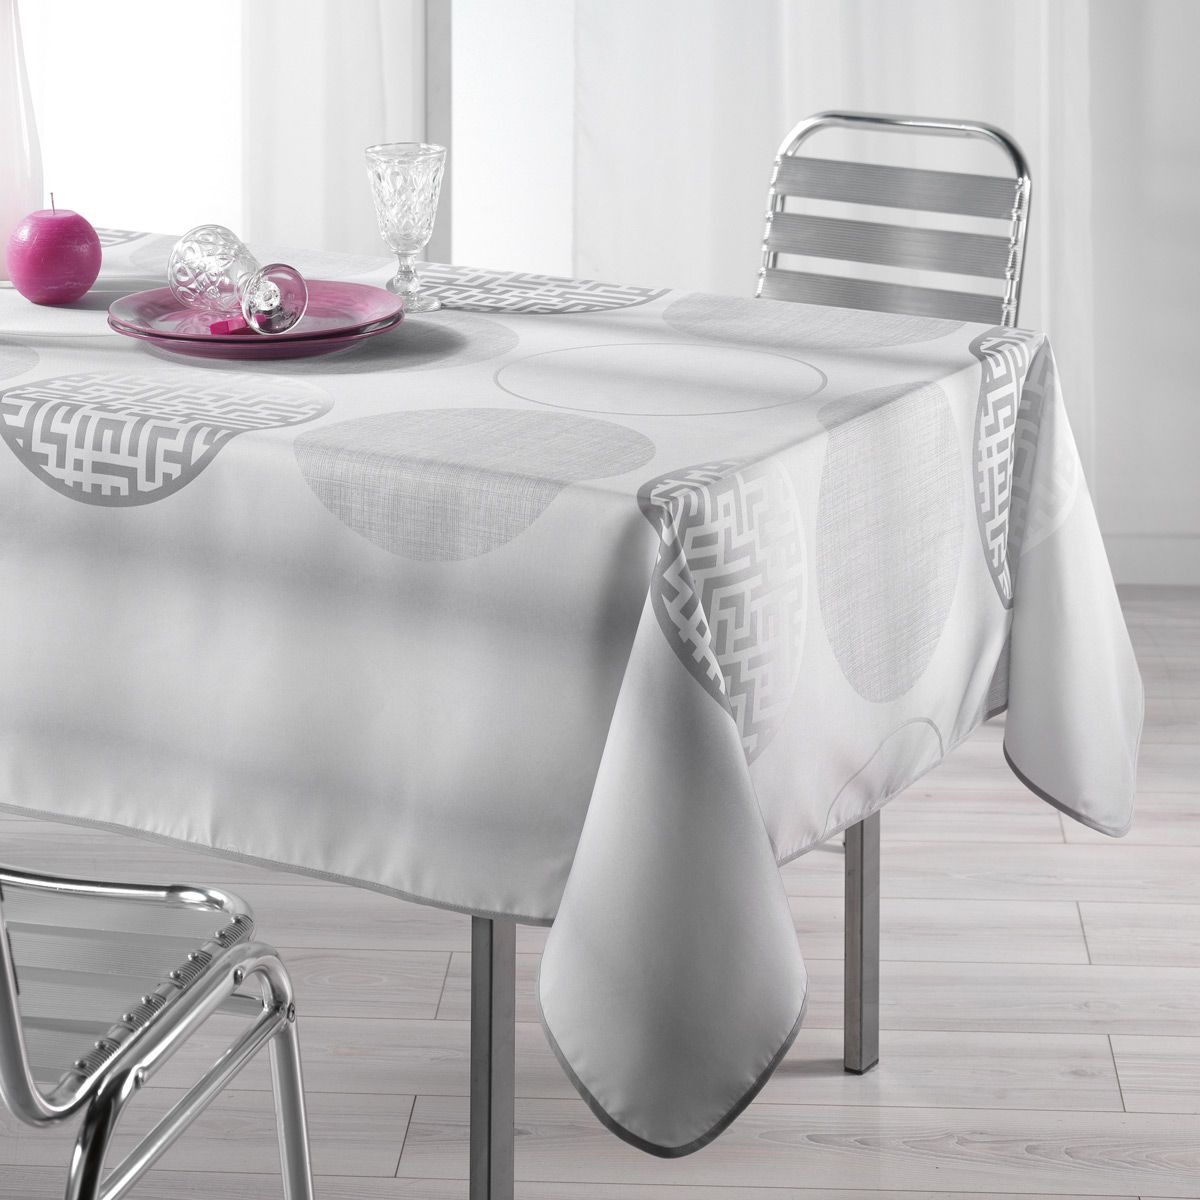 nappe rectangulaire l240 cm kosmo gris nappe de table eminza. Black Bedroom Furniture Sets. Home Design Ideas